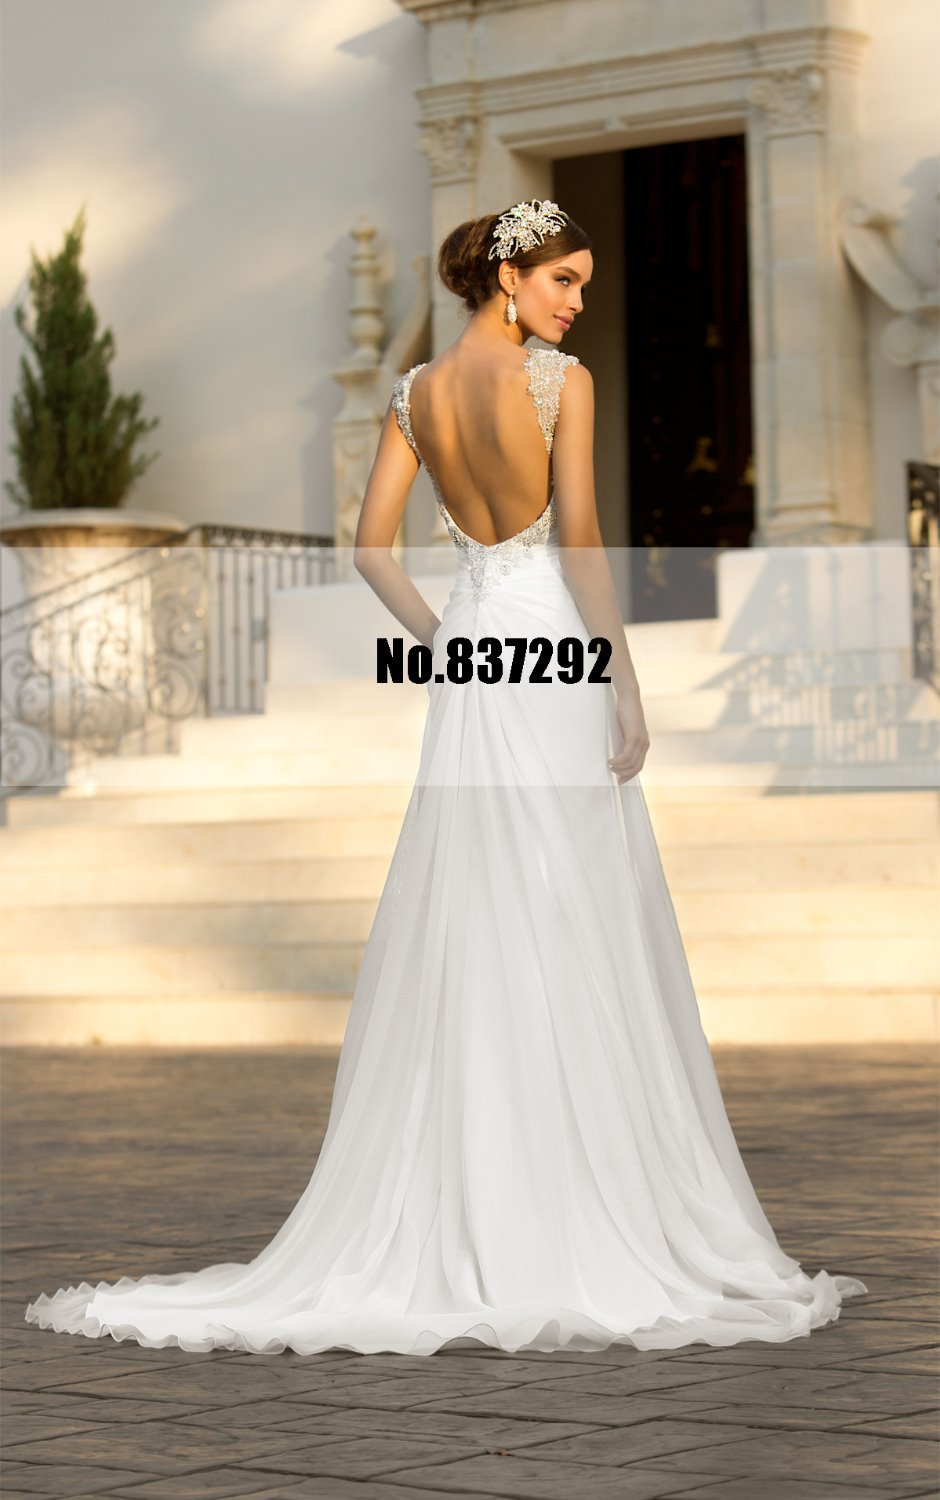 Backless sexy wedding dresses cap sleeves plus size for Sexy plus size wedding dresses